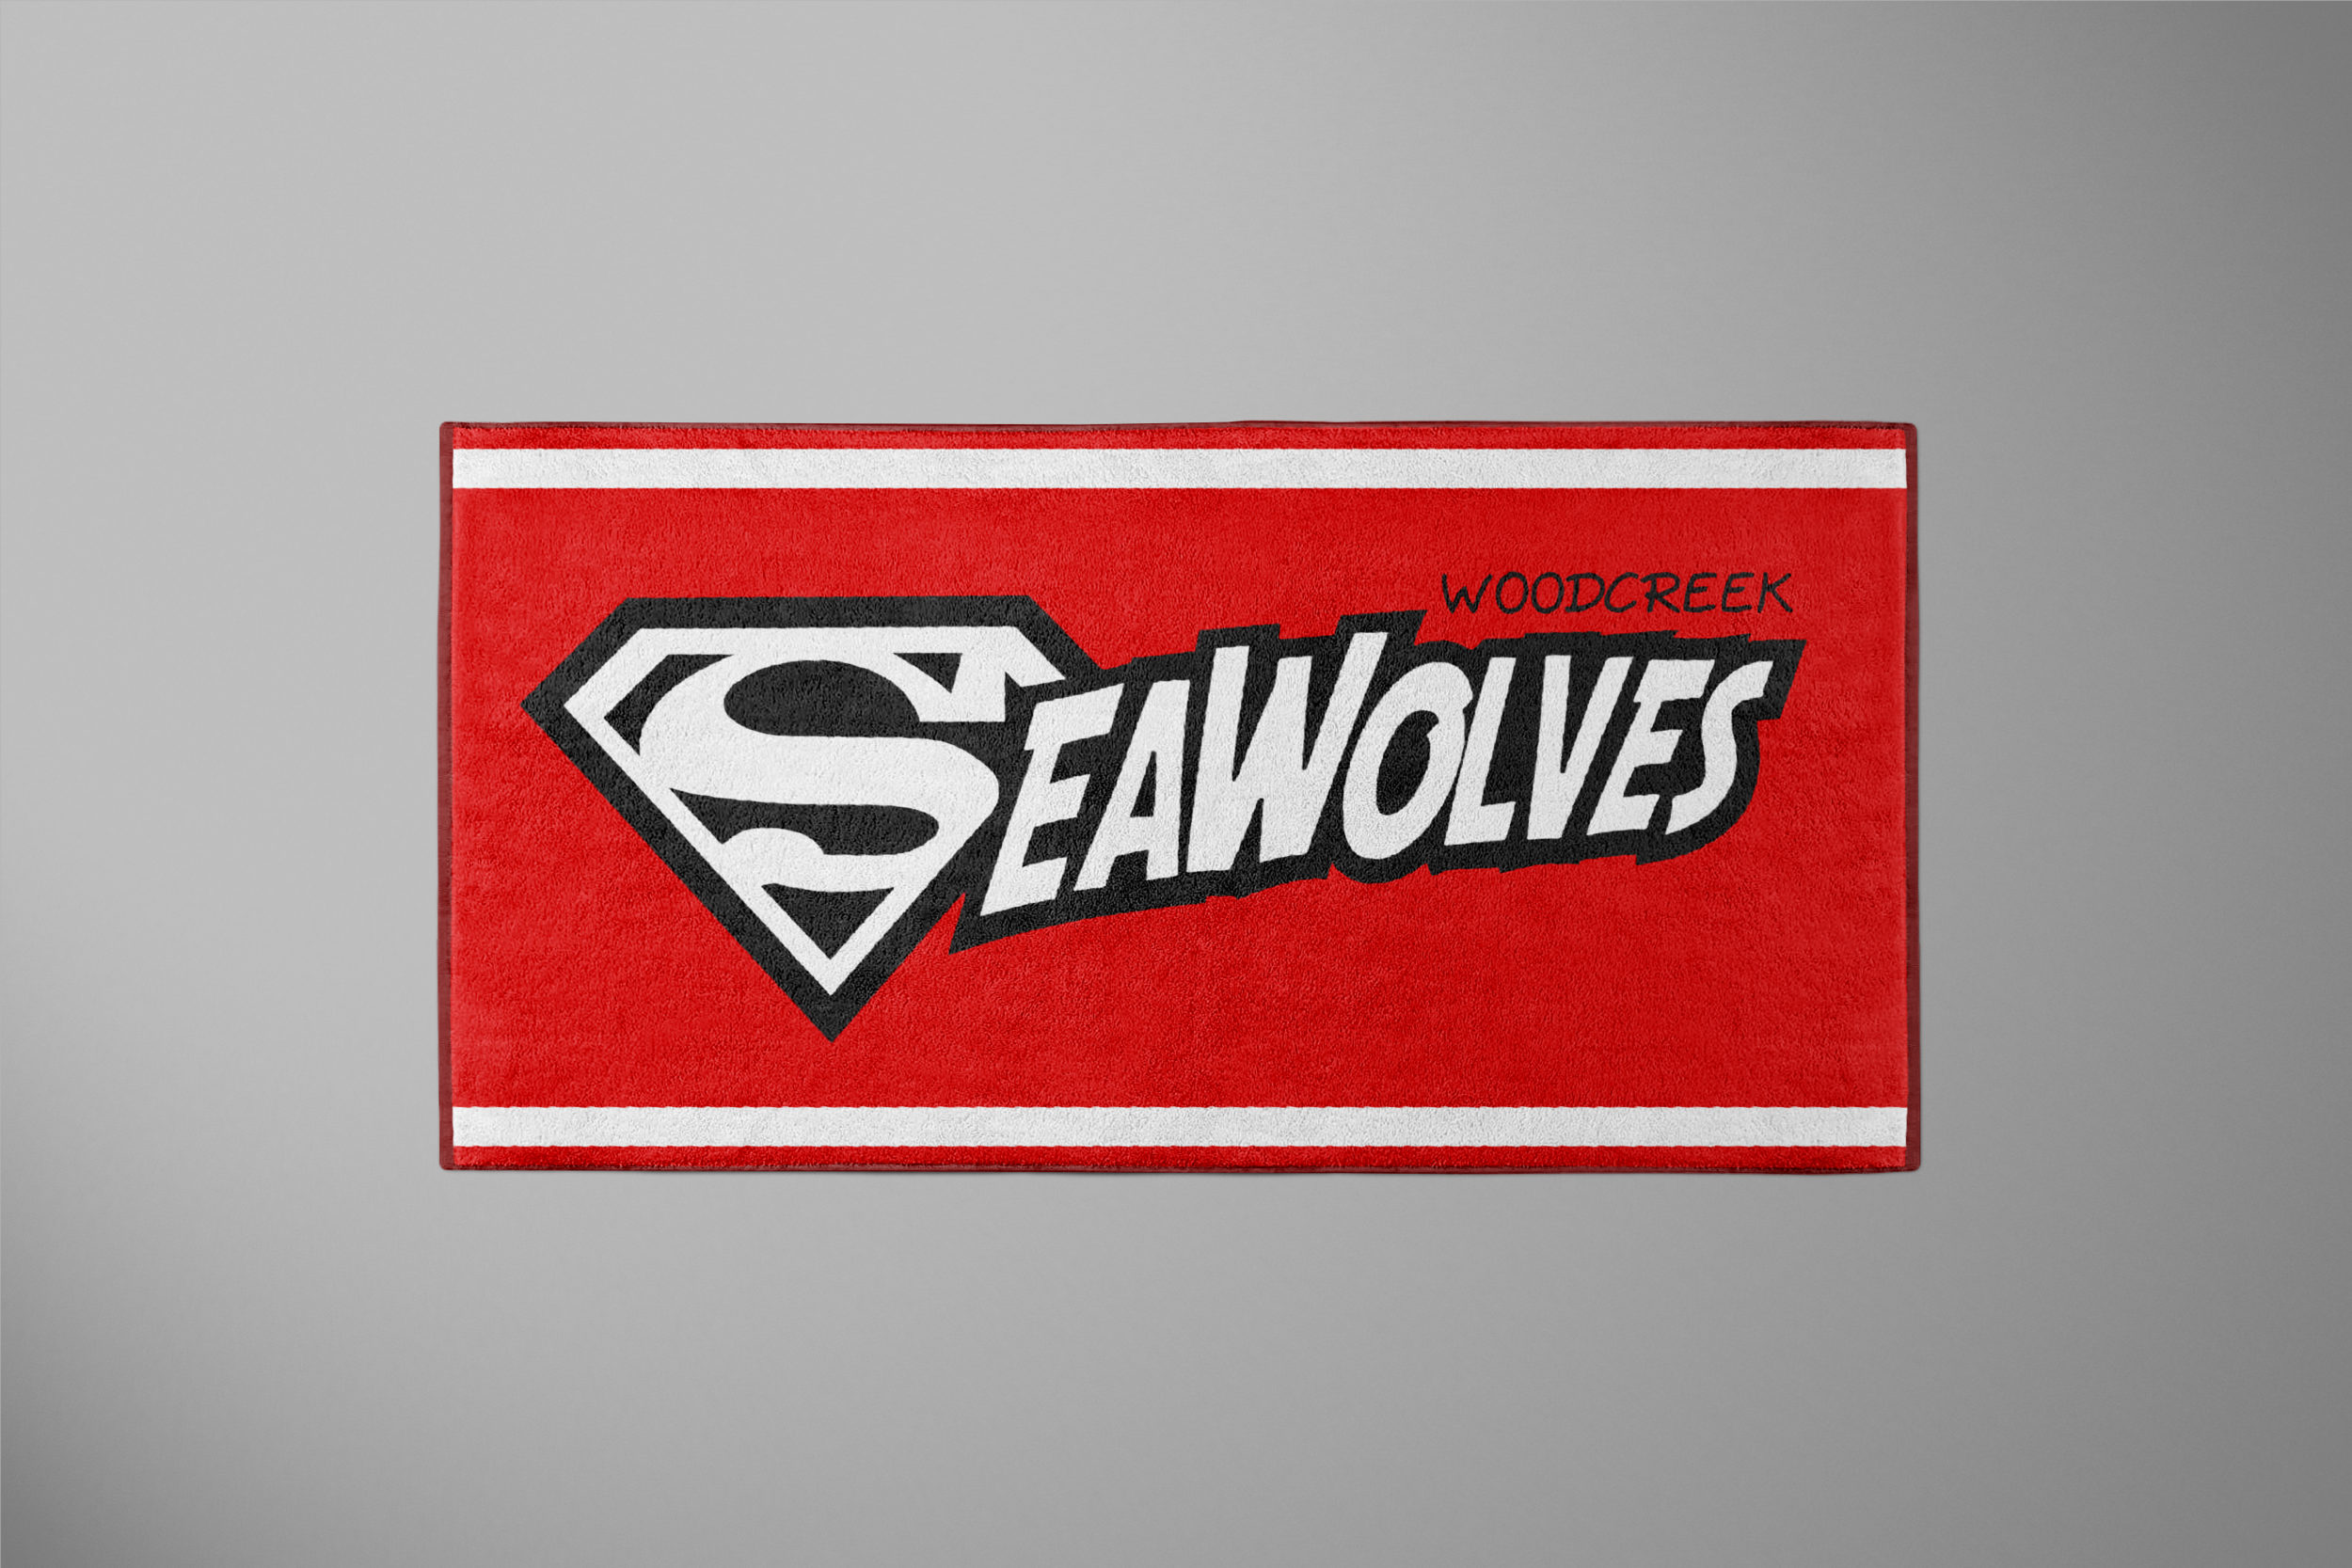 seawolves.png